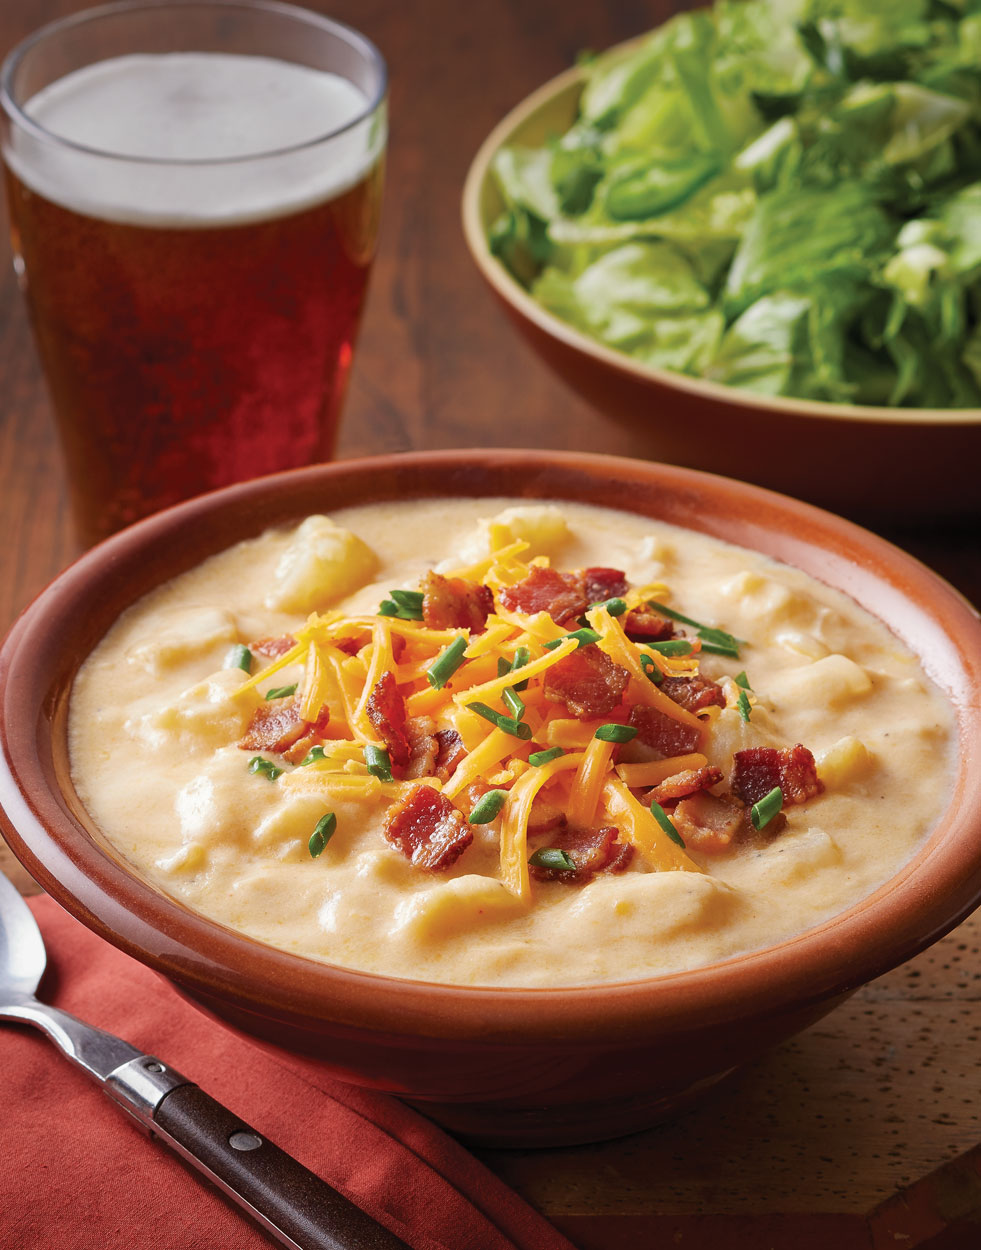 Cheesy Baked Potato Soup with bacon